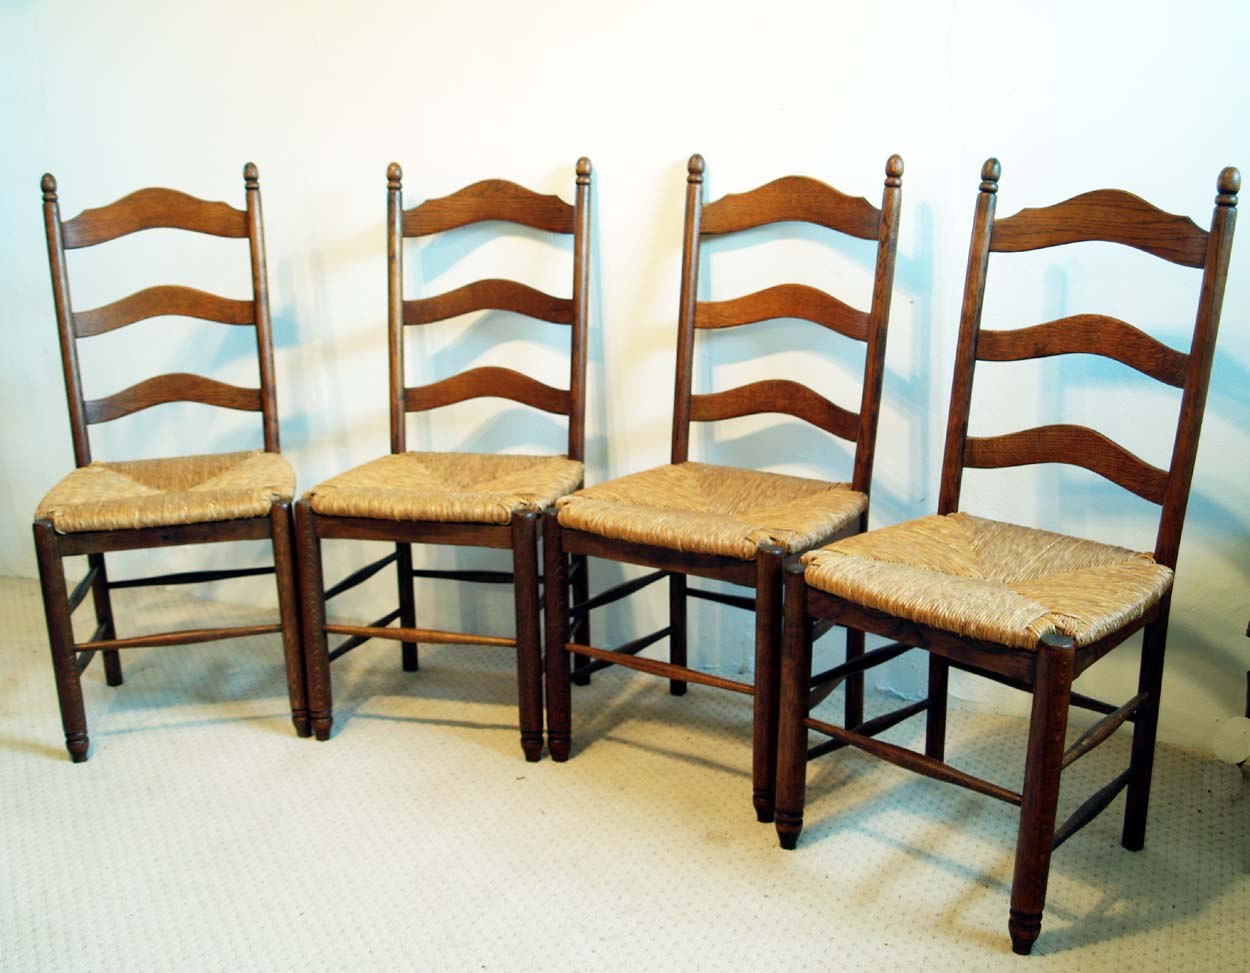 Set of 4 French antique shaker style chairs